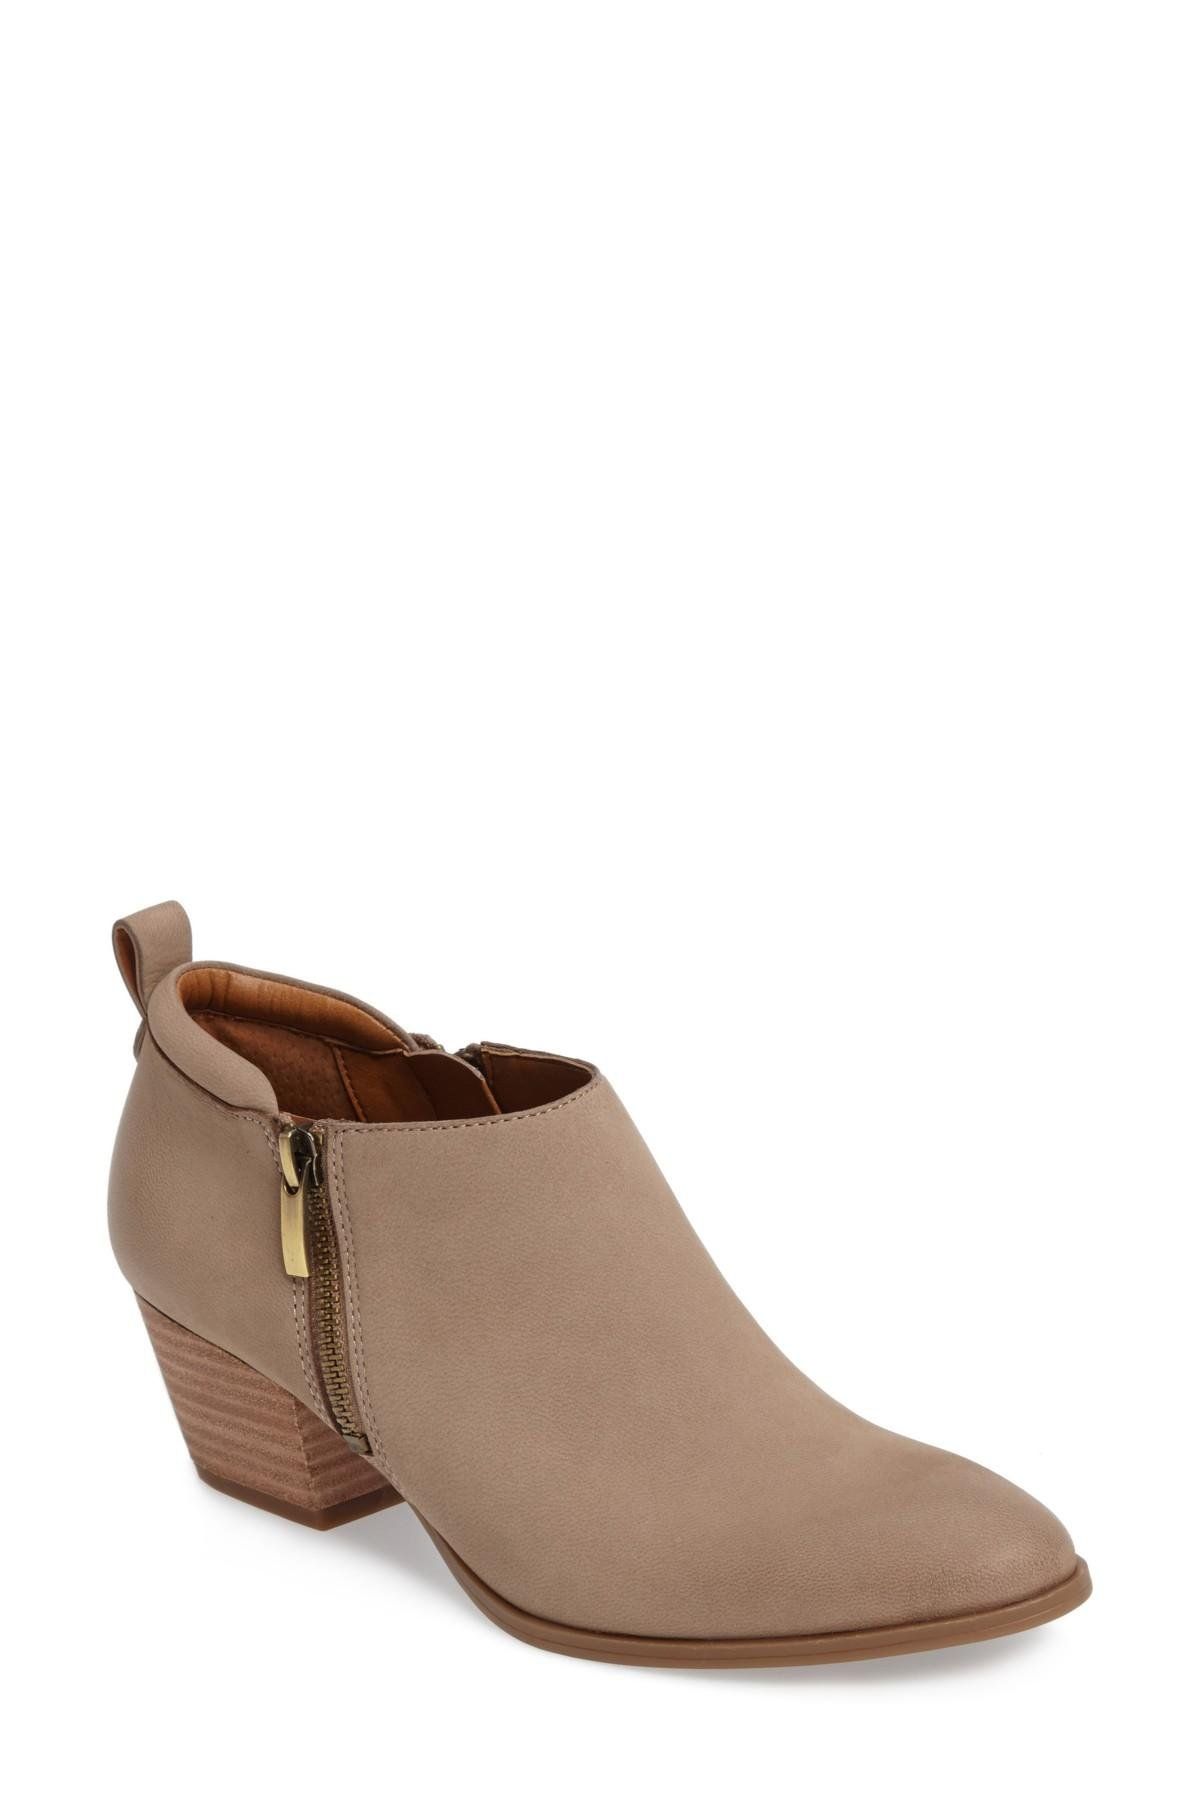 22cf10a20 Franco Sarto. Women's Brown Granite Bootie. $120 $47 From Nordstrom Rack